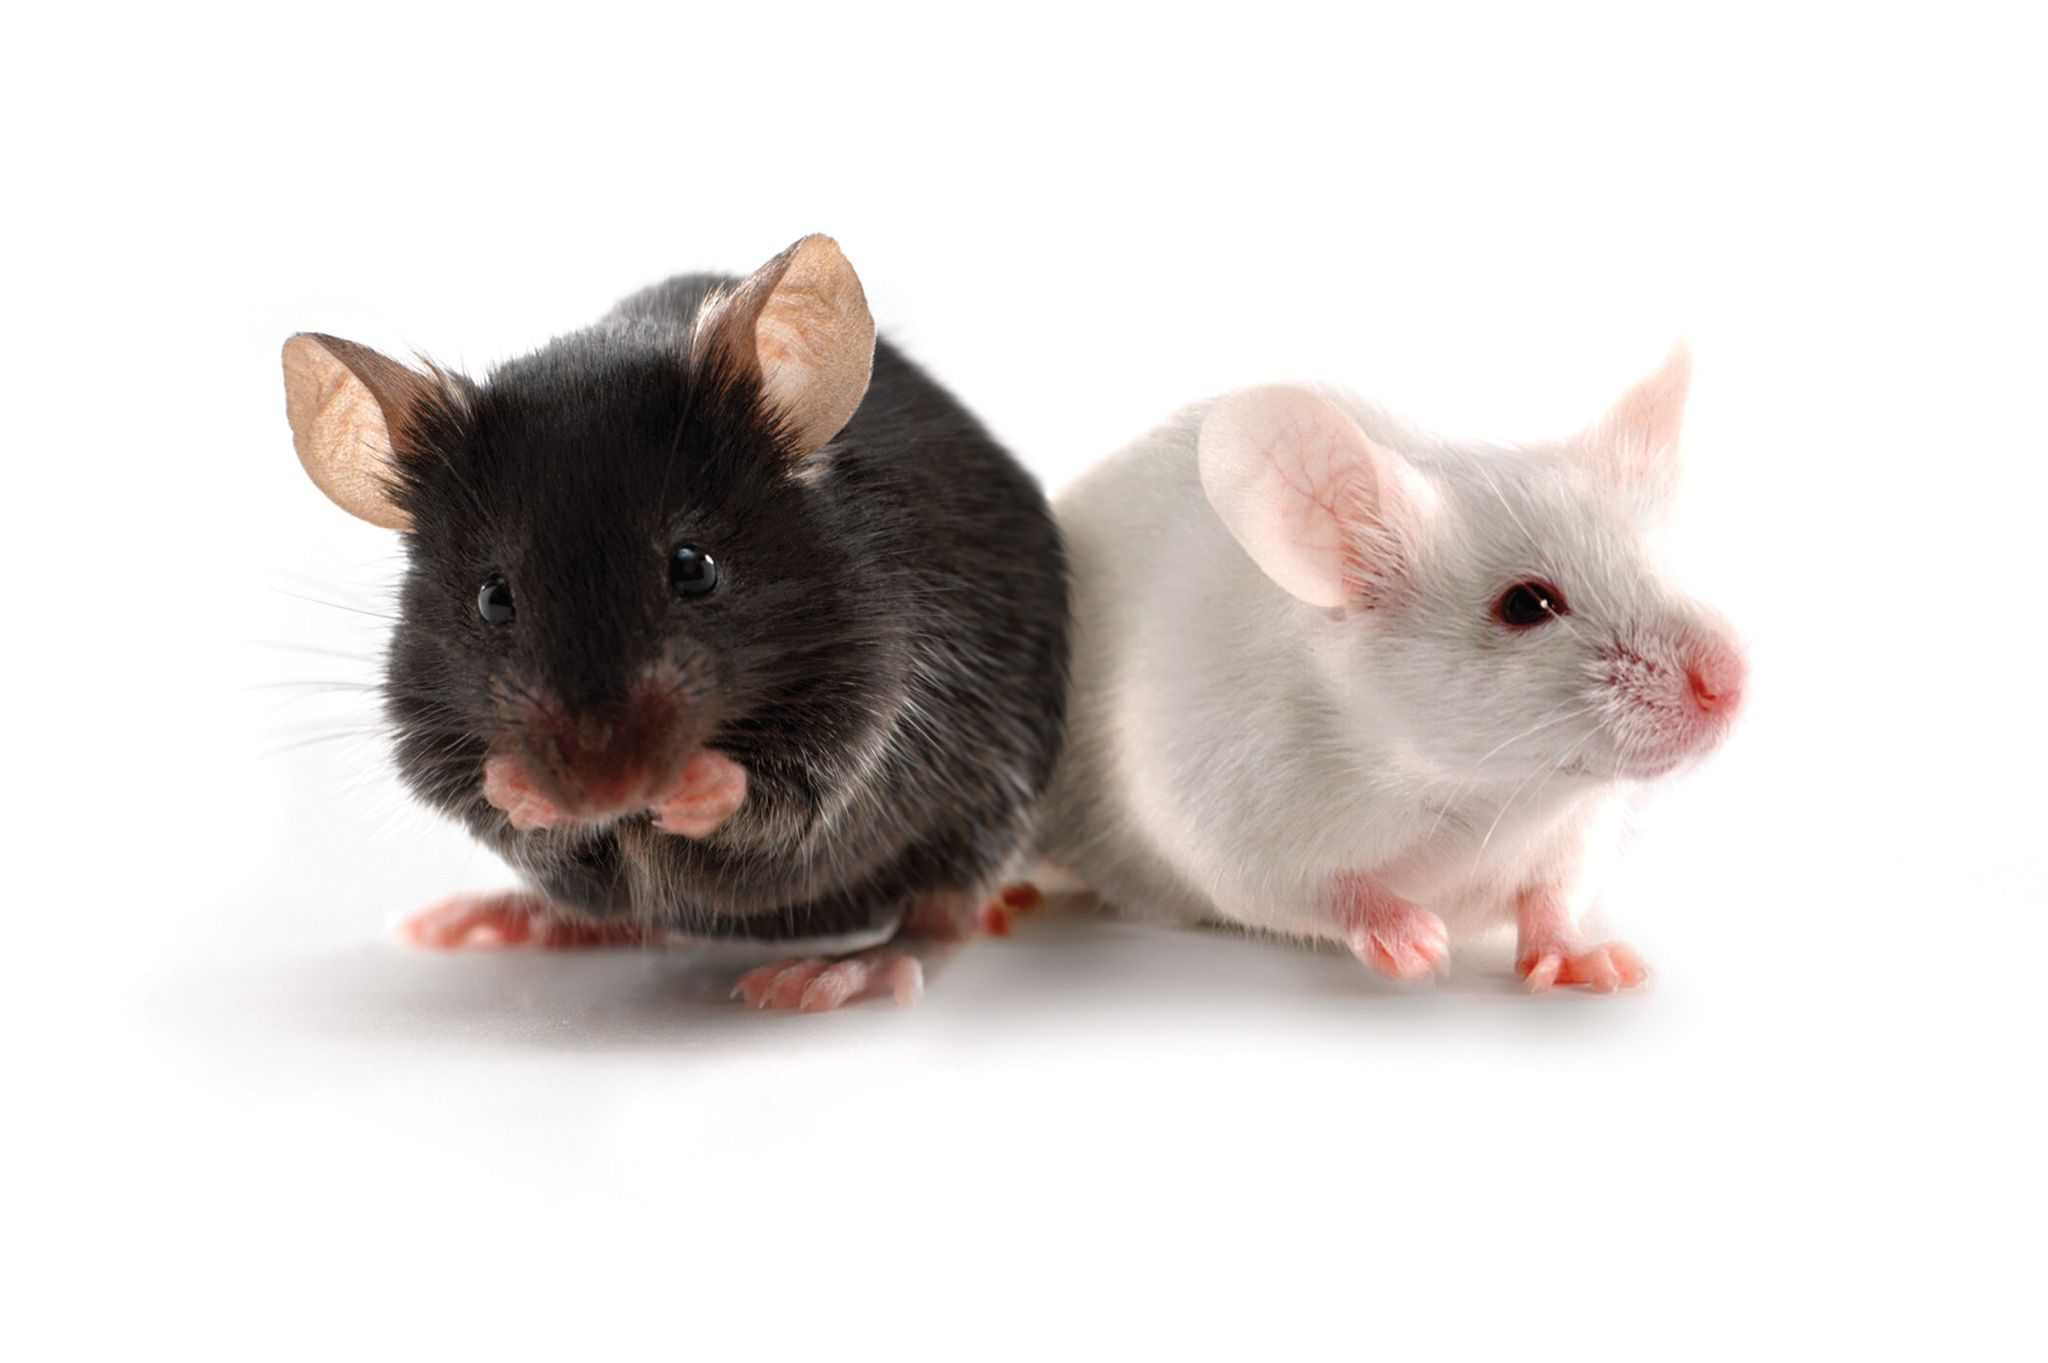 two research mouse models